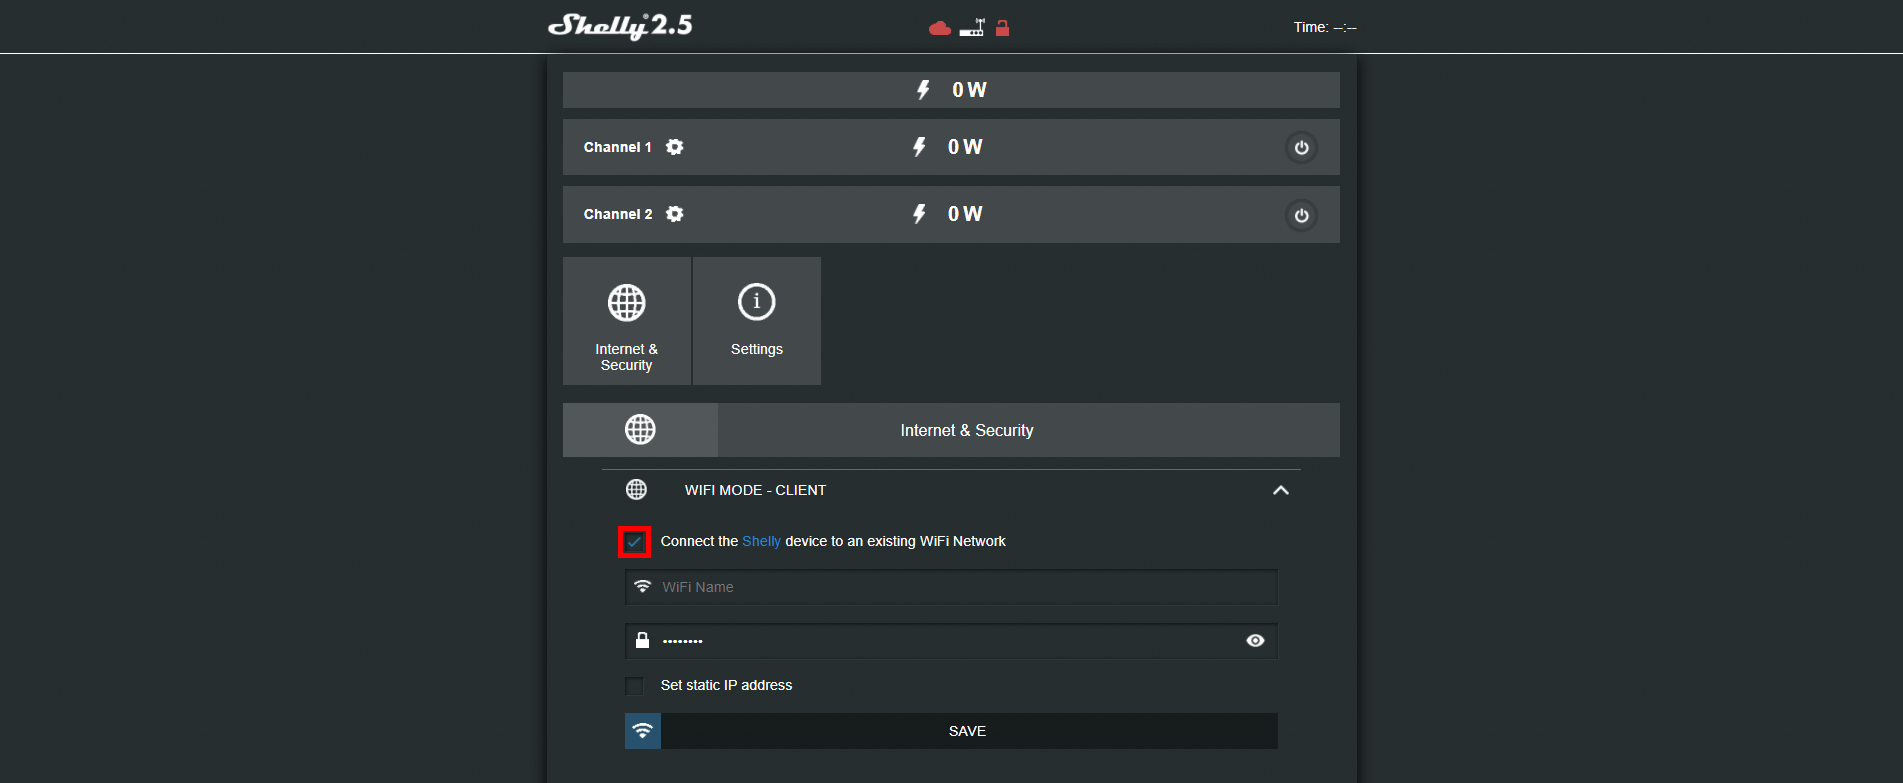 How to enable the wifi mode client inside the shelly's 2.5 web interface